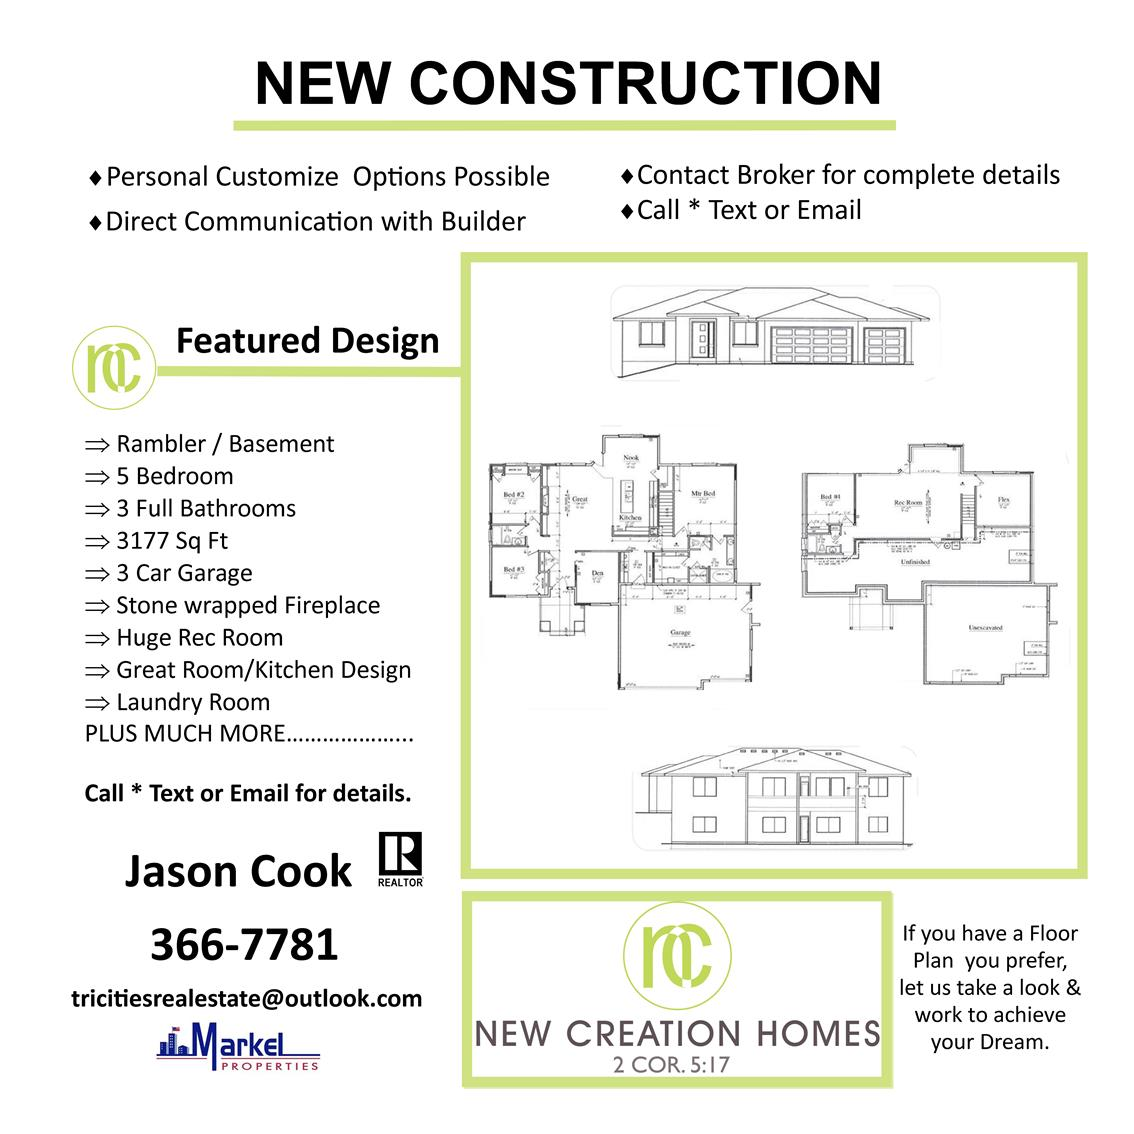 New Creation Homes